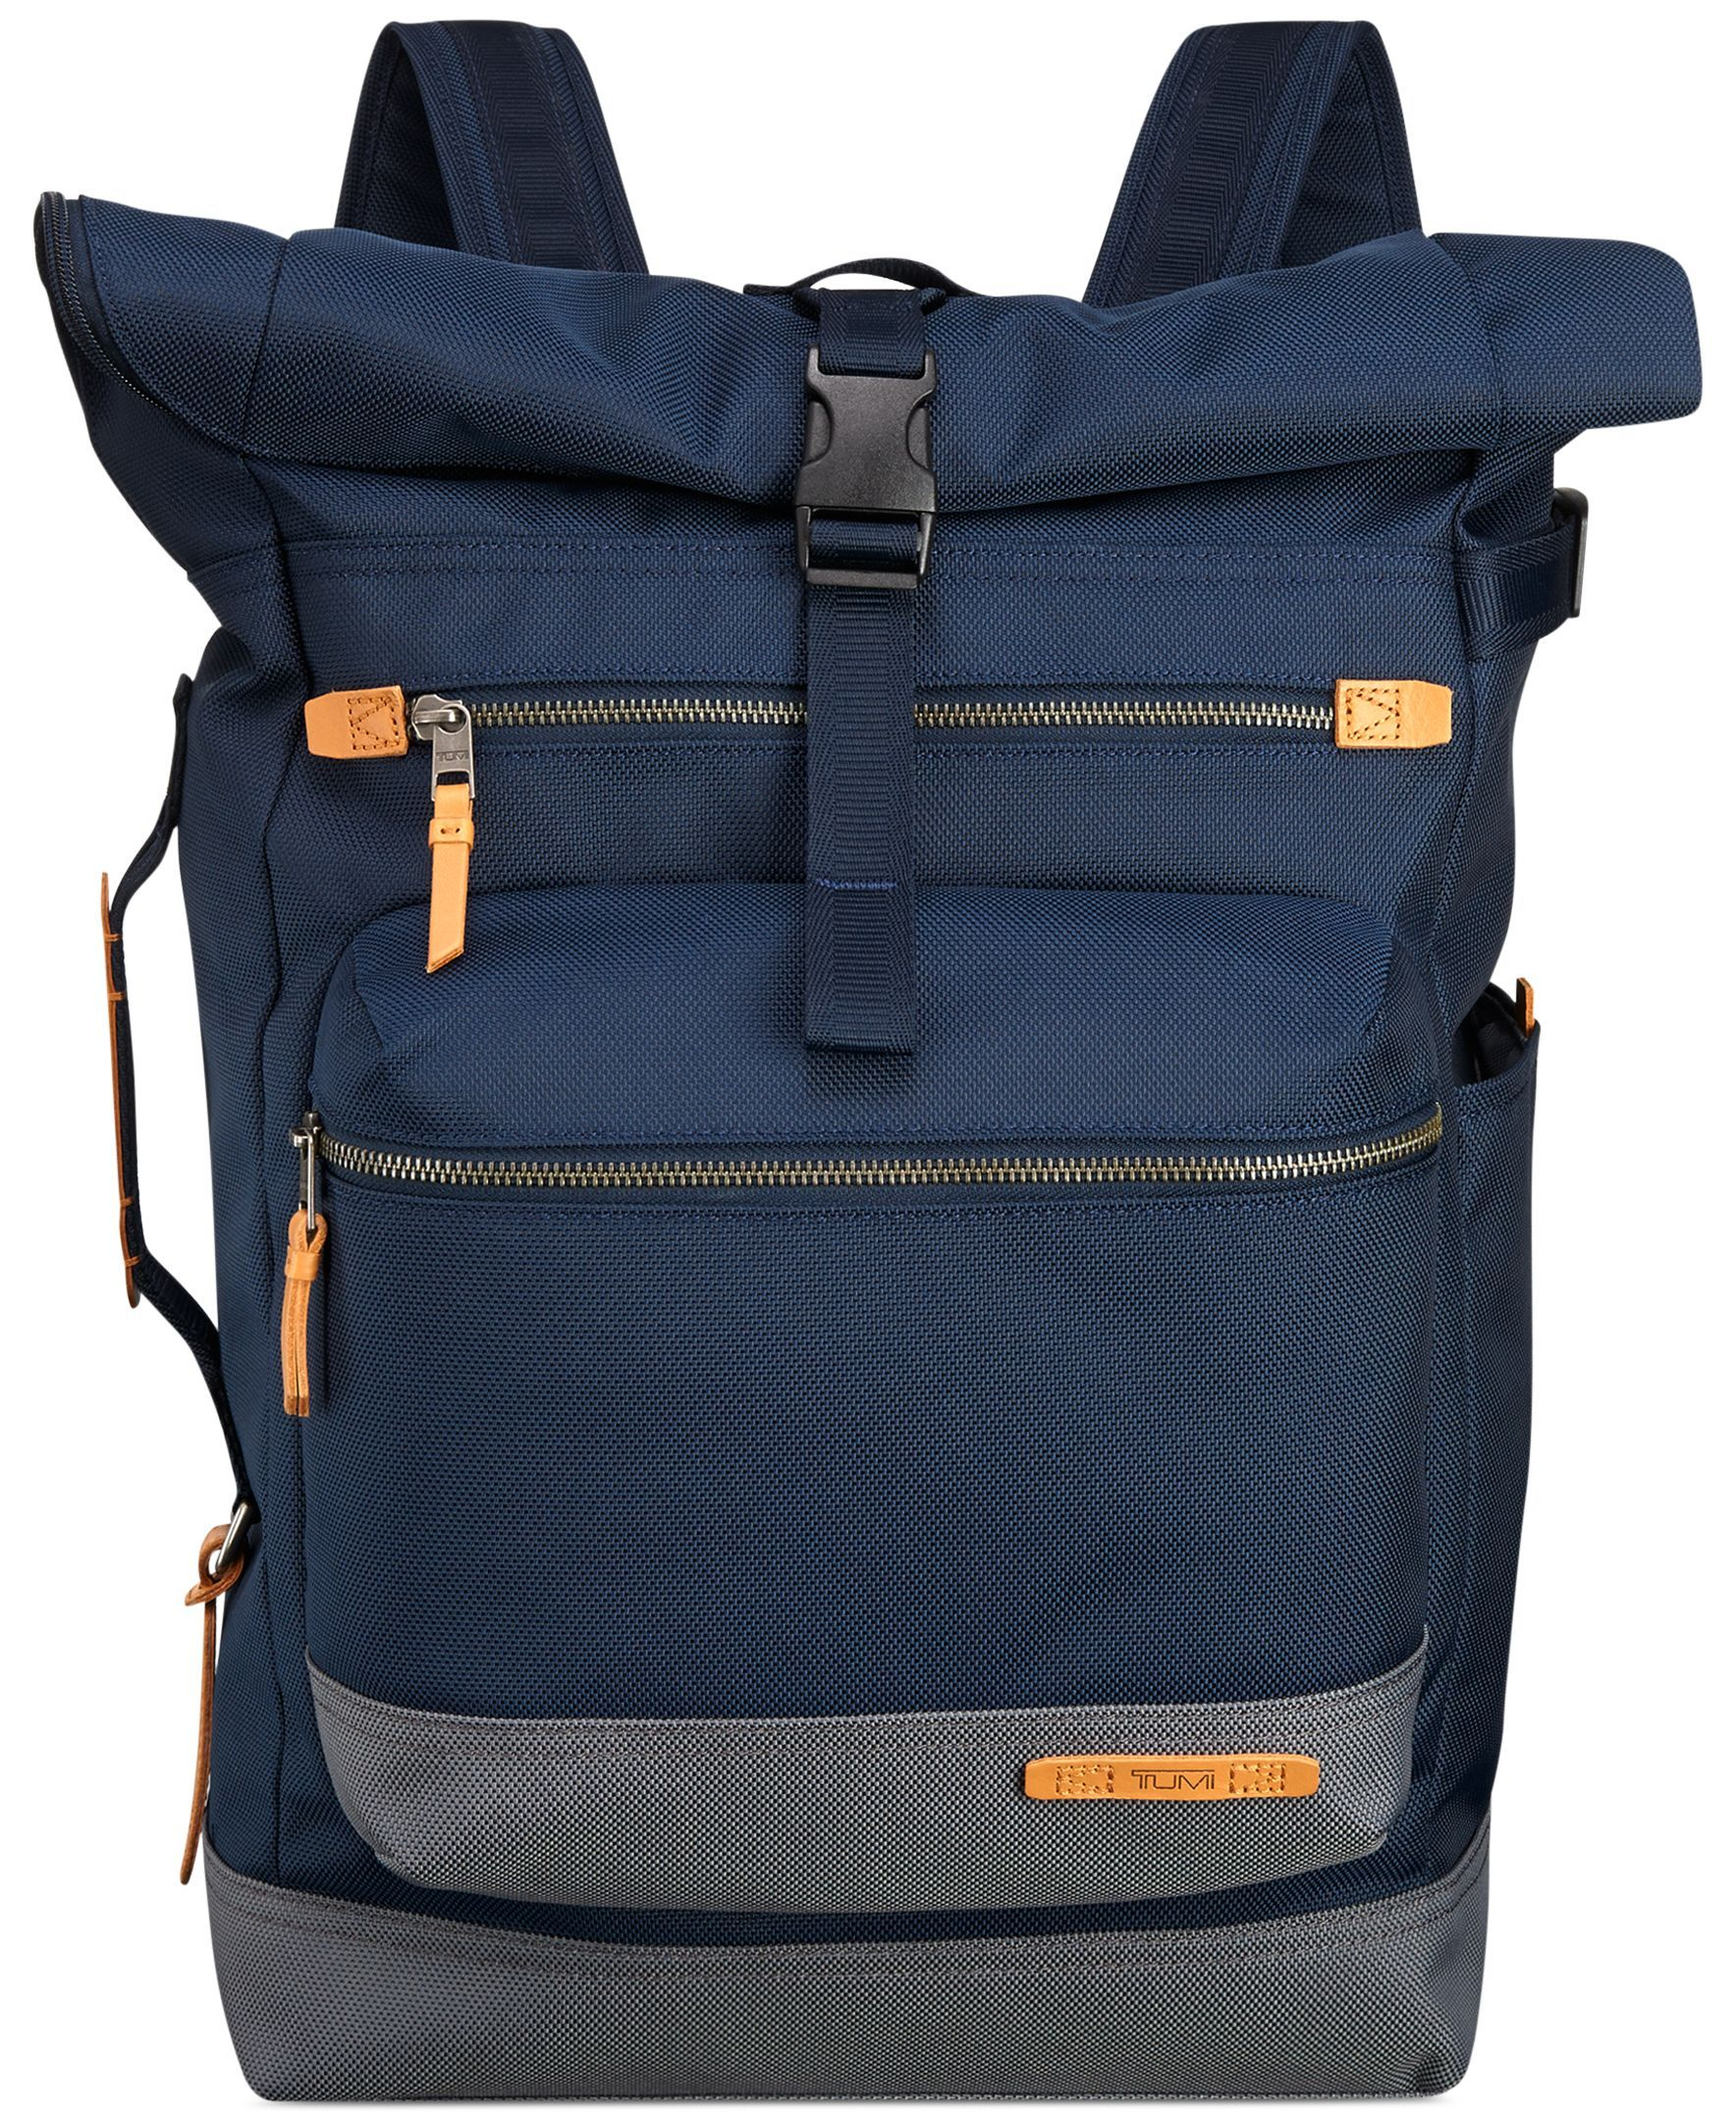 tumi dalston collection ridley roll top backpack things